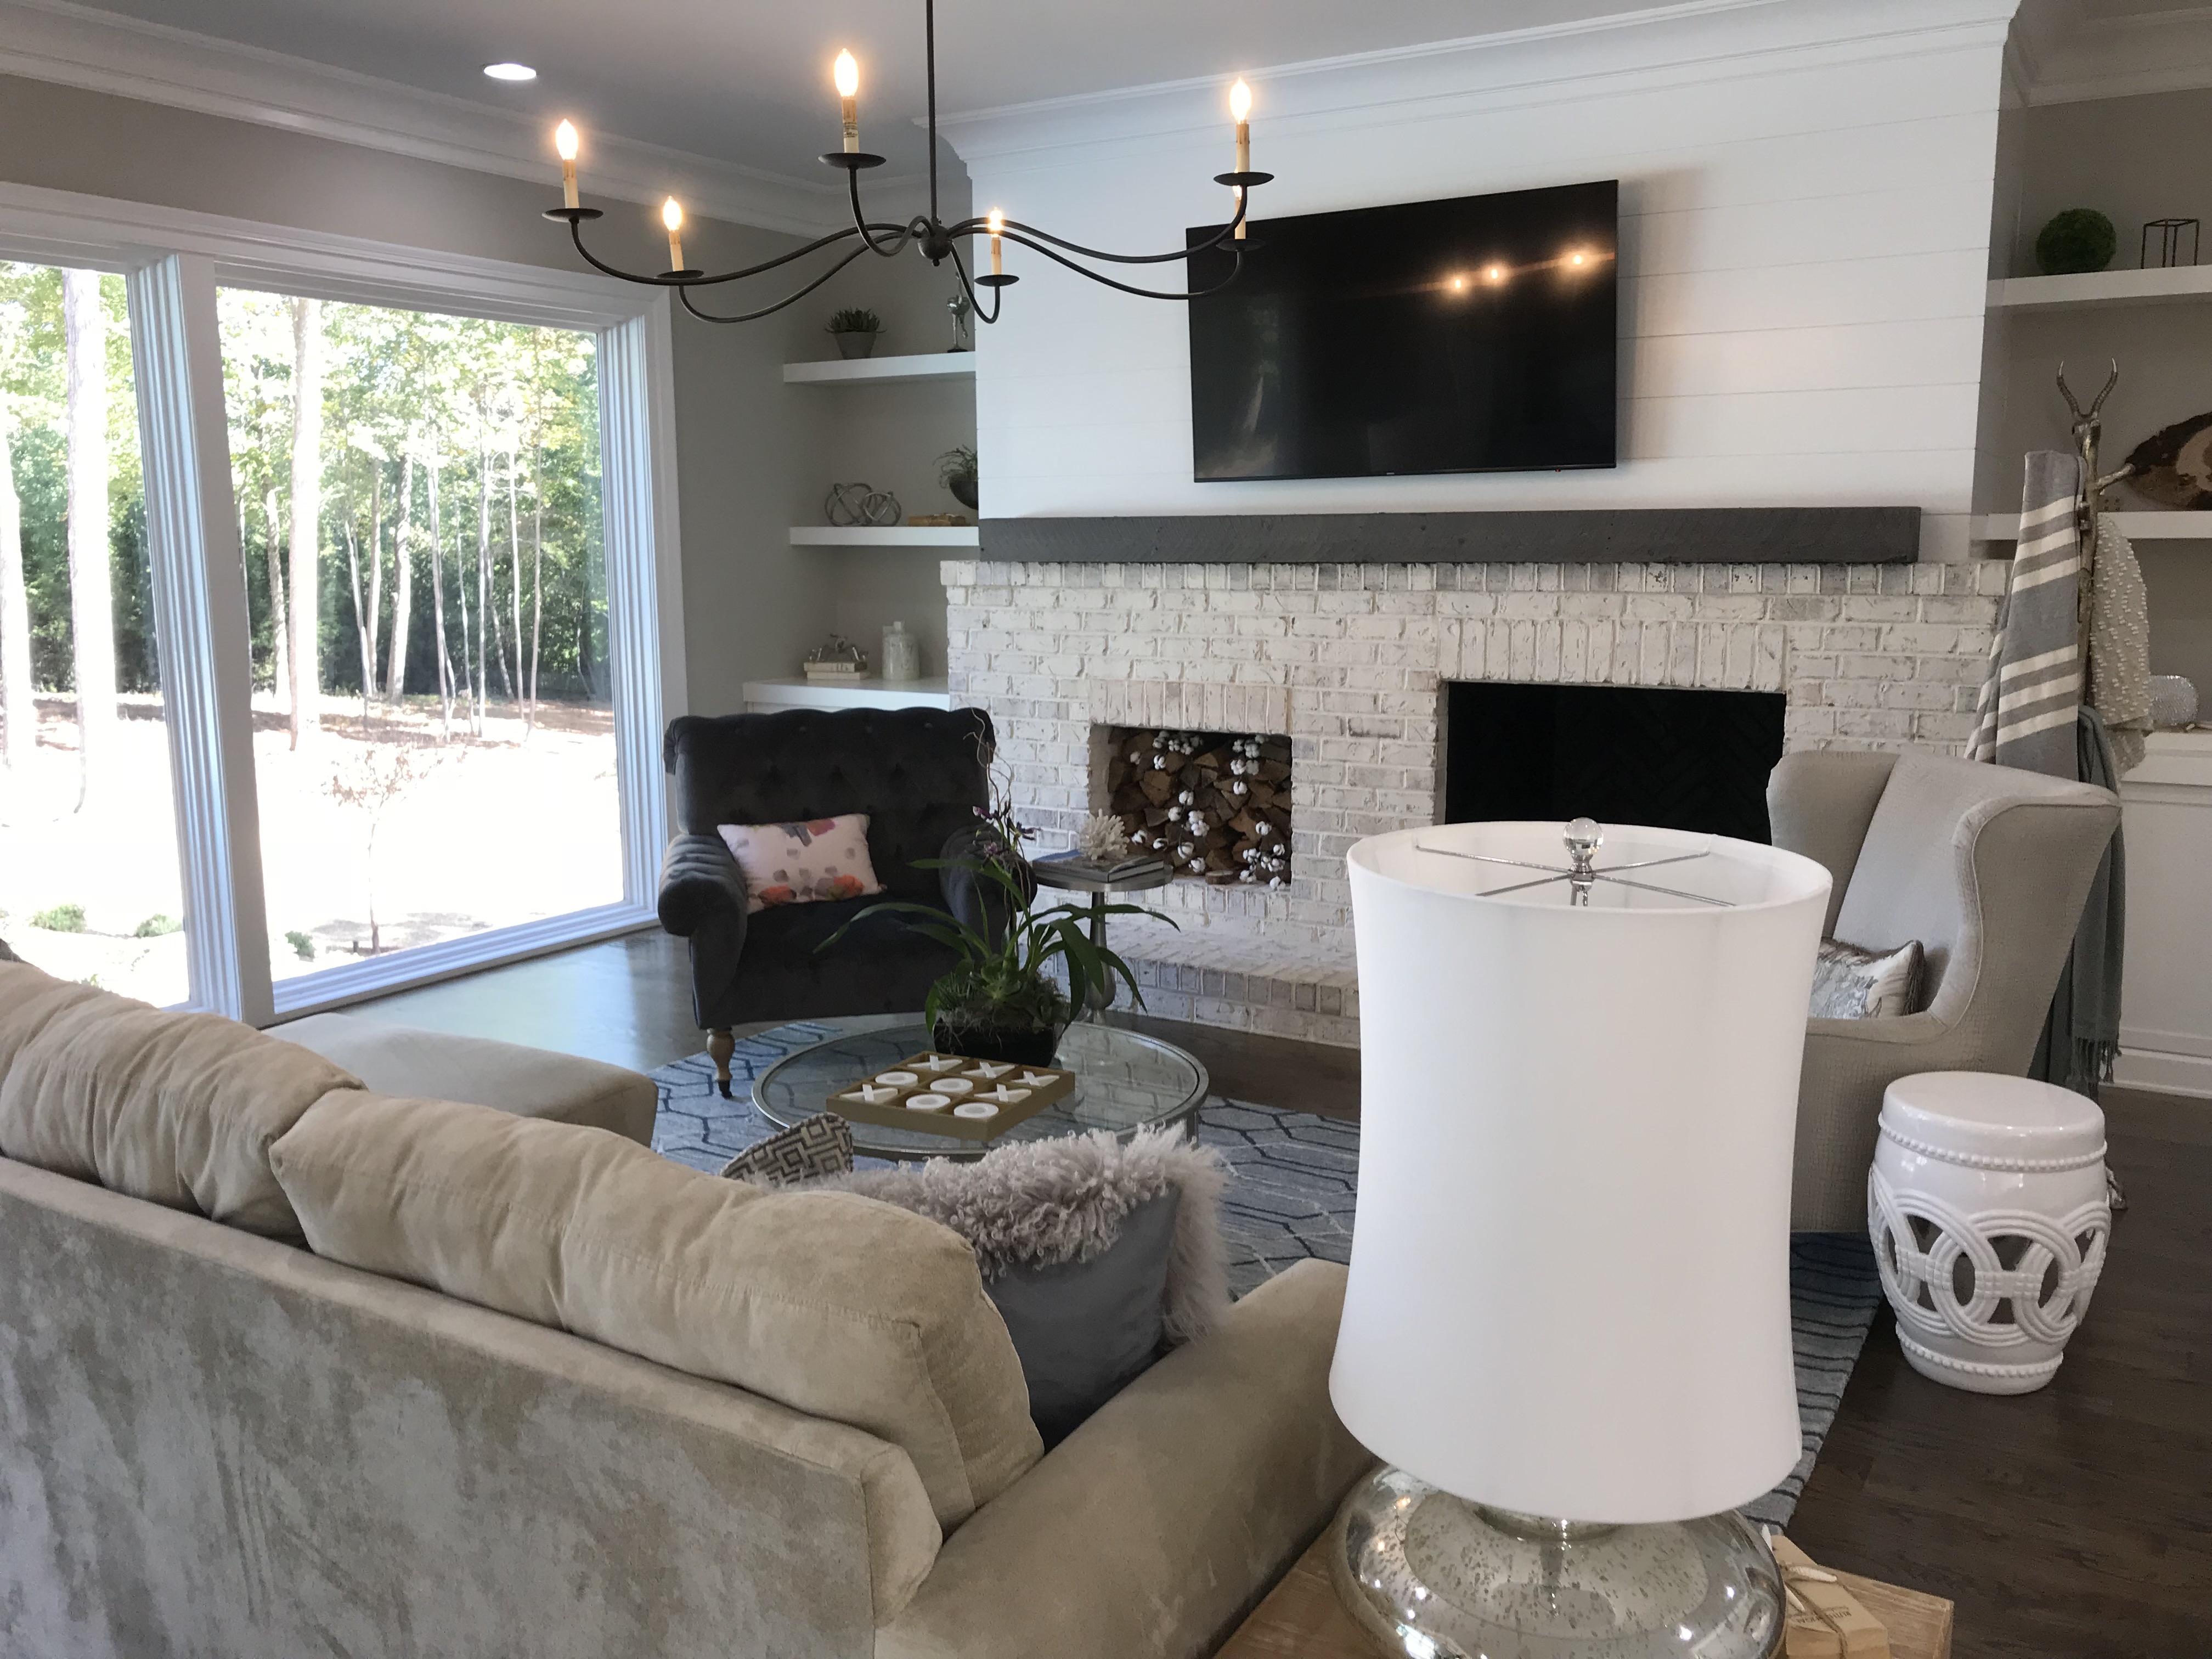 <div class='meta'><div class='origin-logo' data-origin='none'></div><span class='caption-text' data-credit='WTVD photo/Shawn Replogle'>Living room - 5149 Avalaire Oaks, Raleigh, NC - $1.9 million by KJ Construction</span></div>